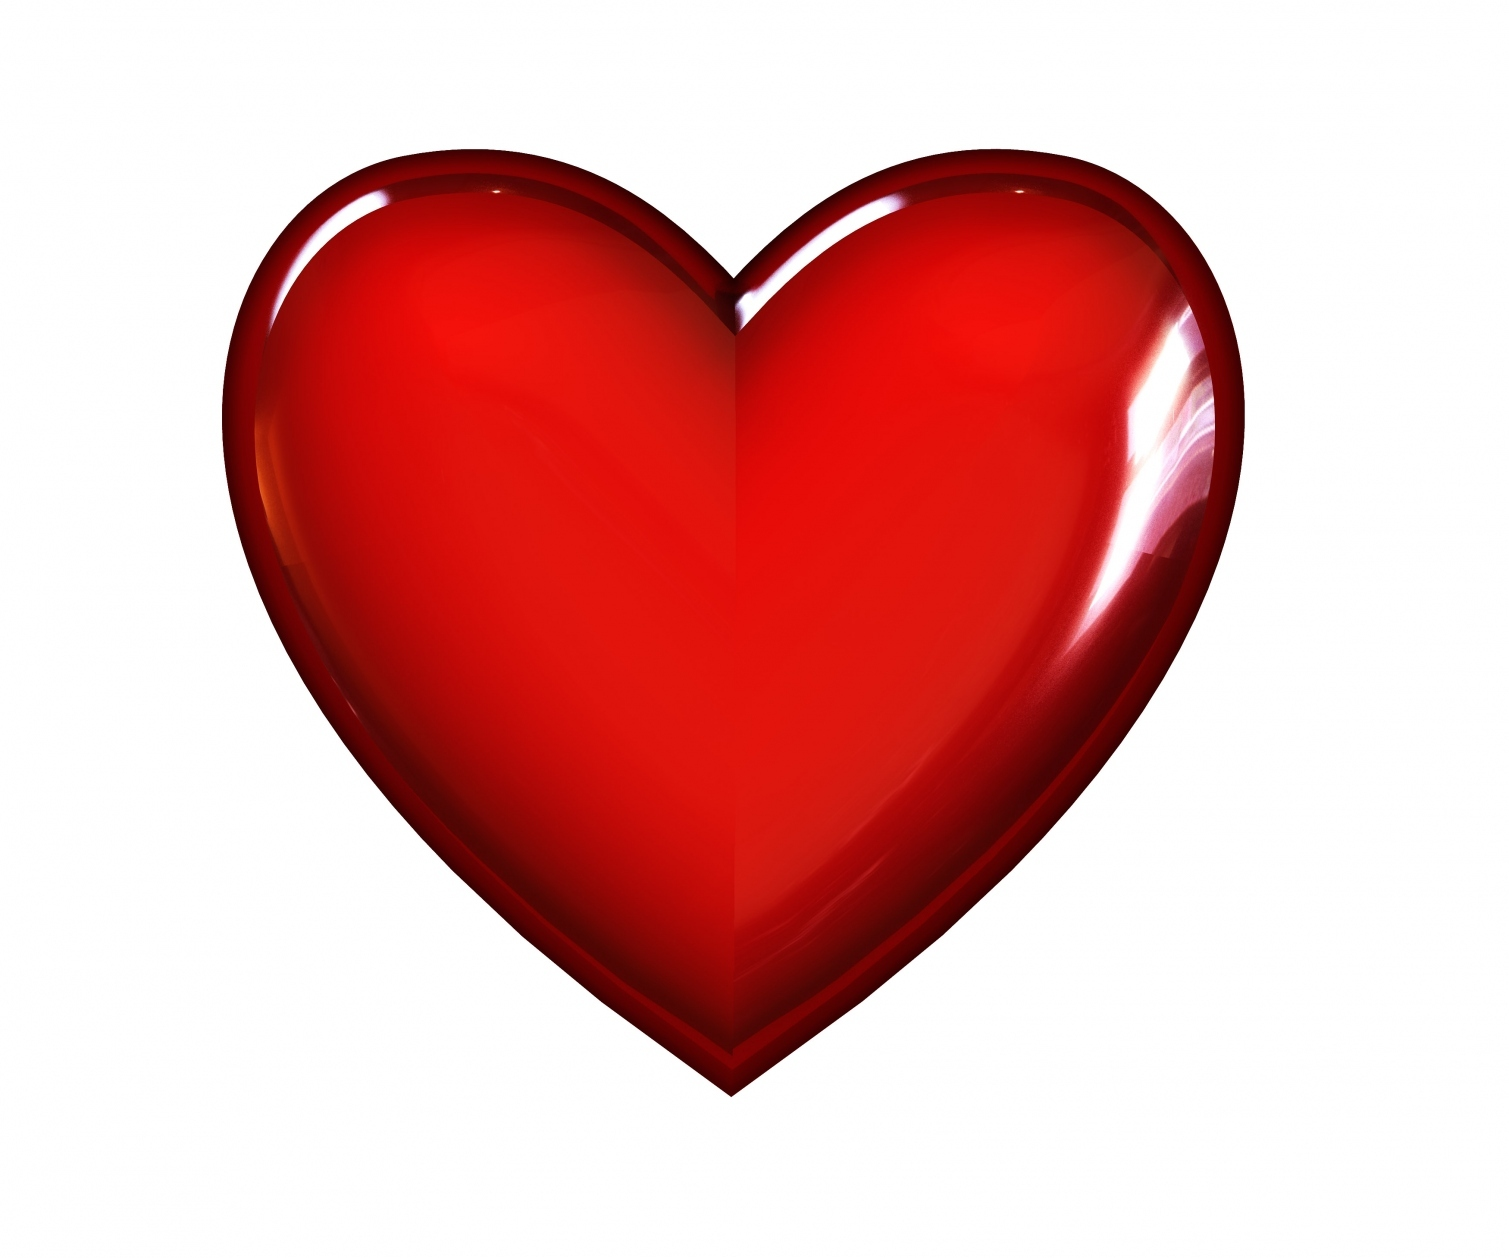 3d heart images clipart jpg free download Free 3d Heart, Download Free Clip Art, Free Clip Art on Clipart Library jpg free download